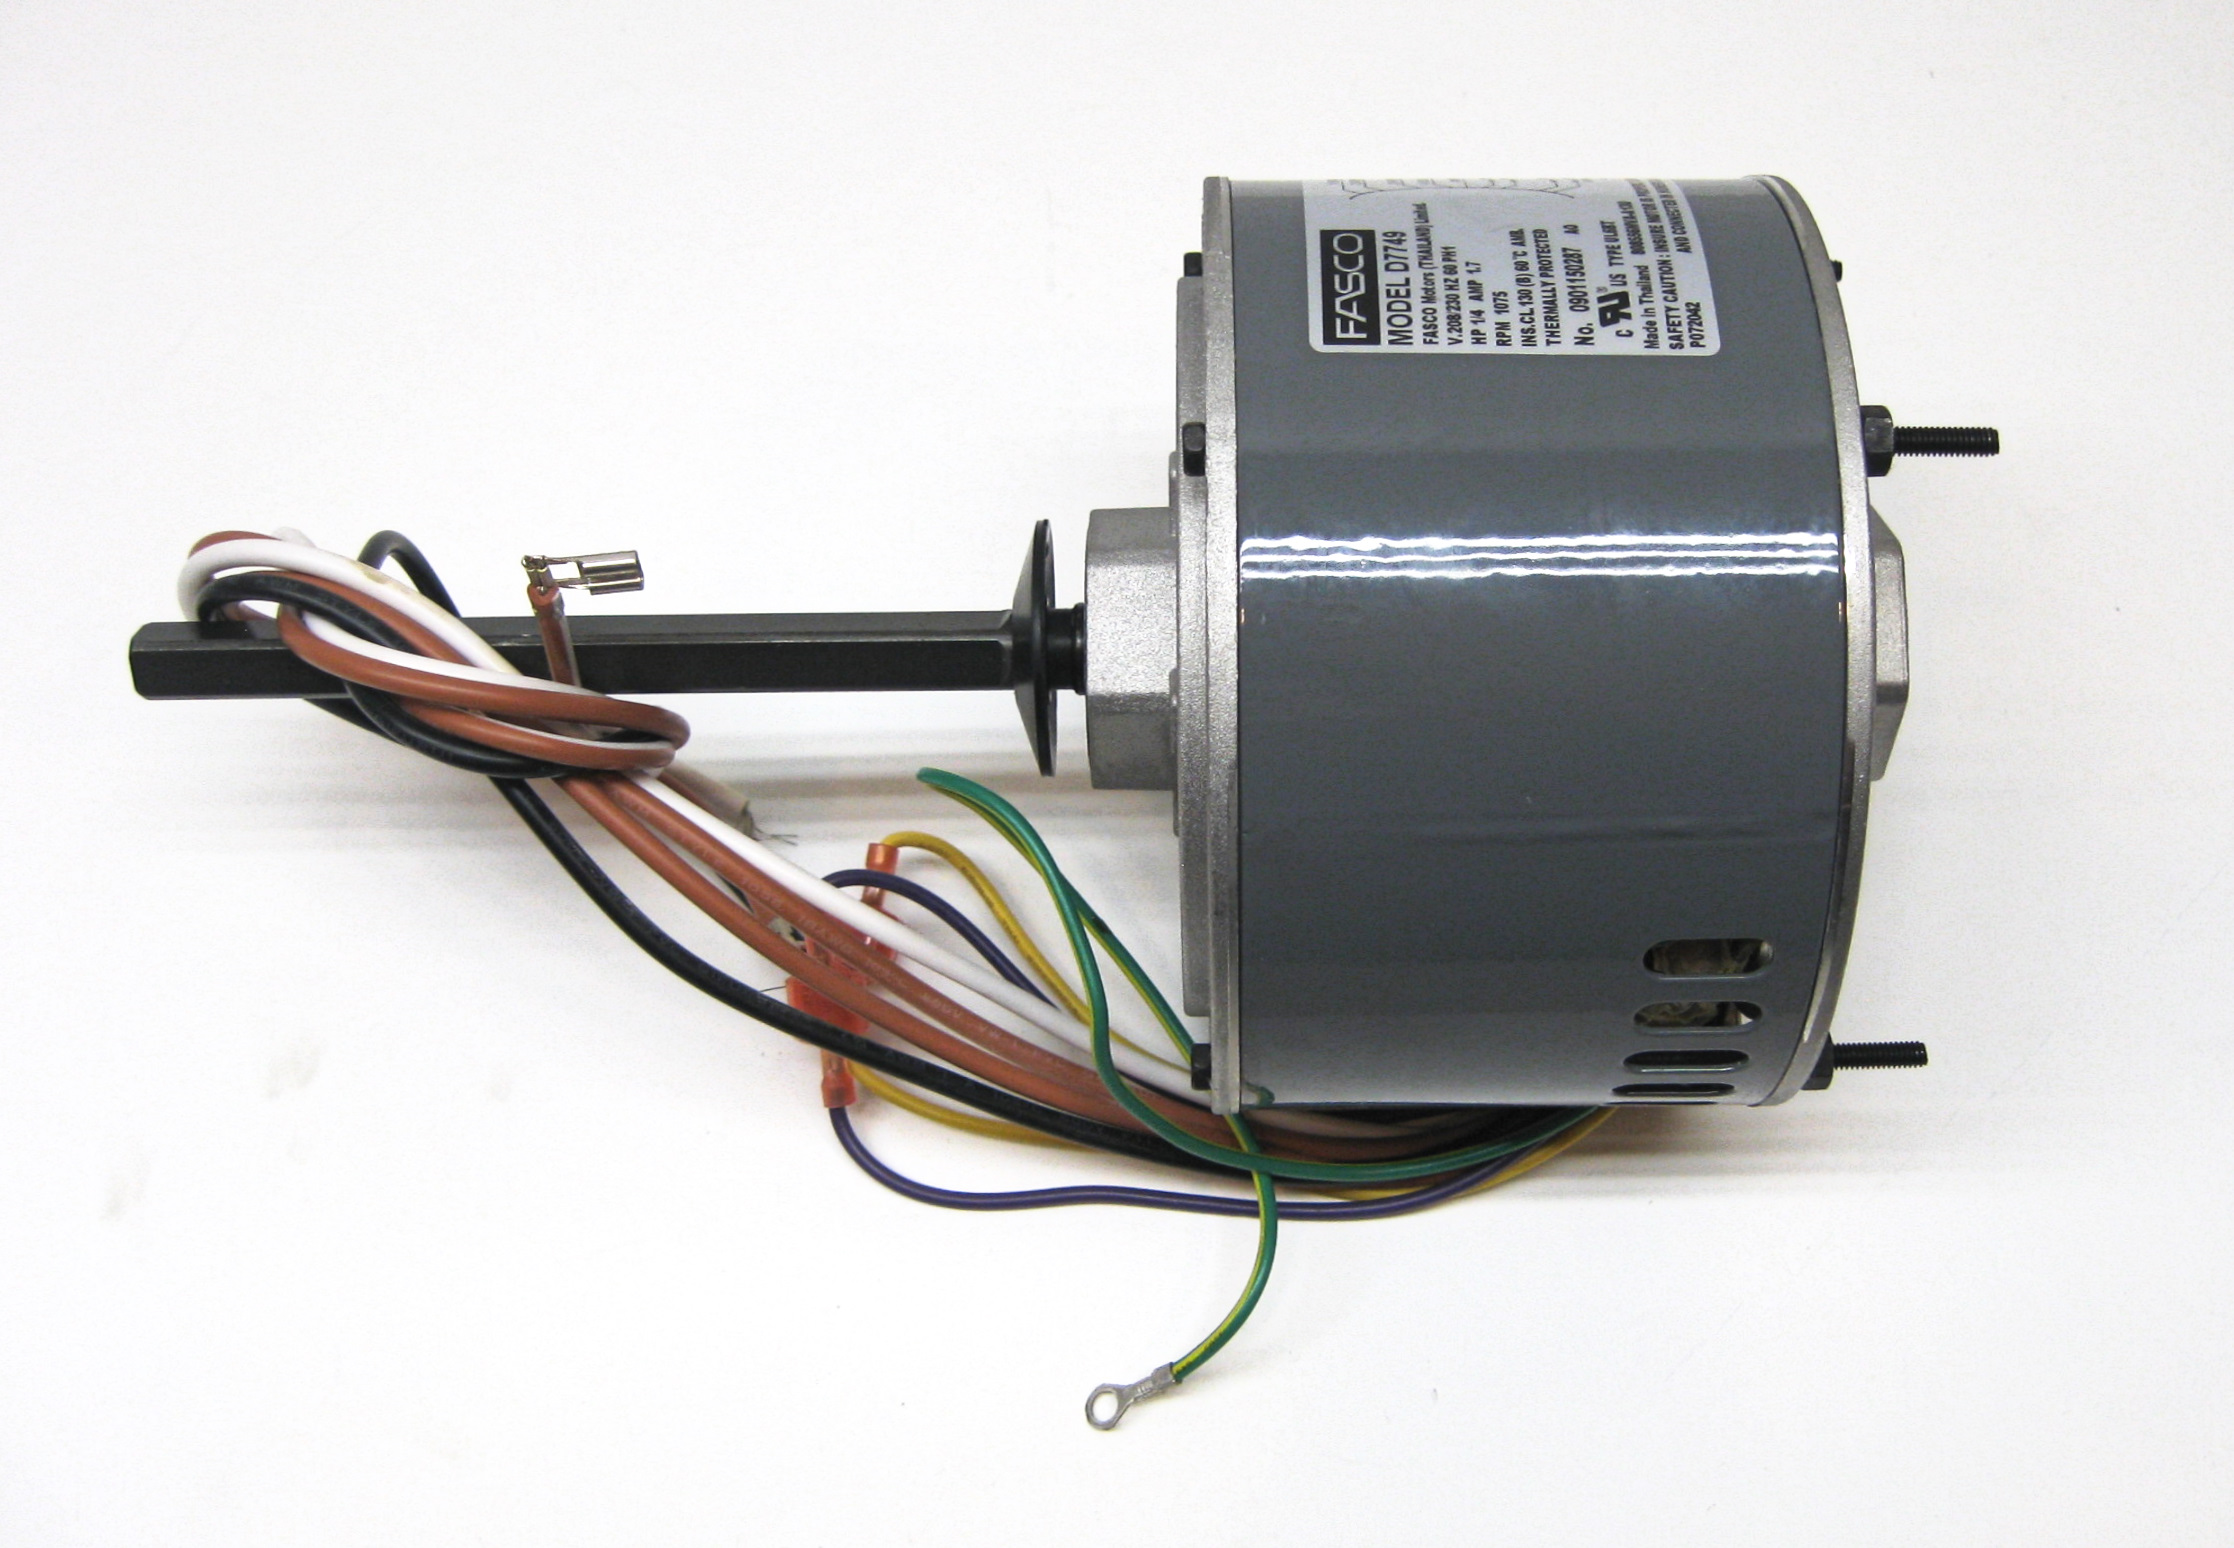 small resolution of air conditioner condenser fan motor shaft up 1 4 hp 230 volts 1075 x 13 motor wiring diagram fasco condenser fan motor wiring diagram